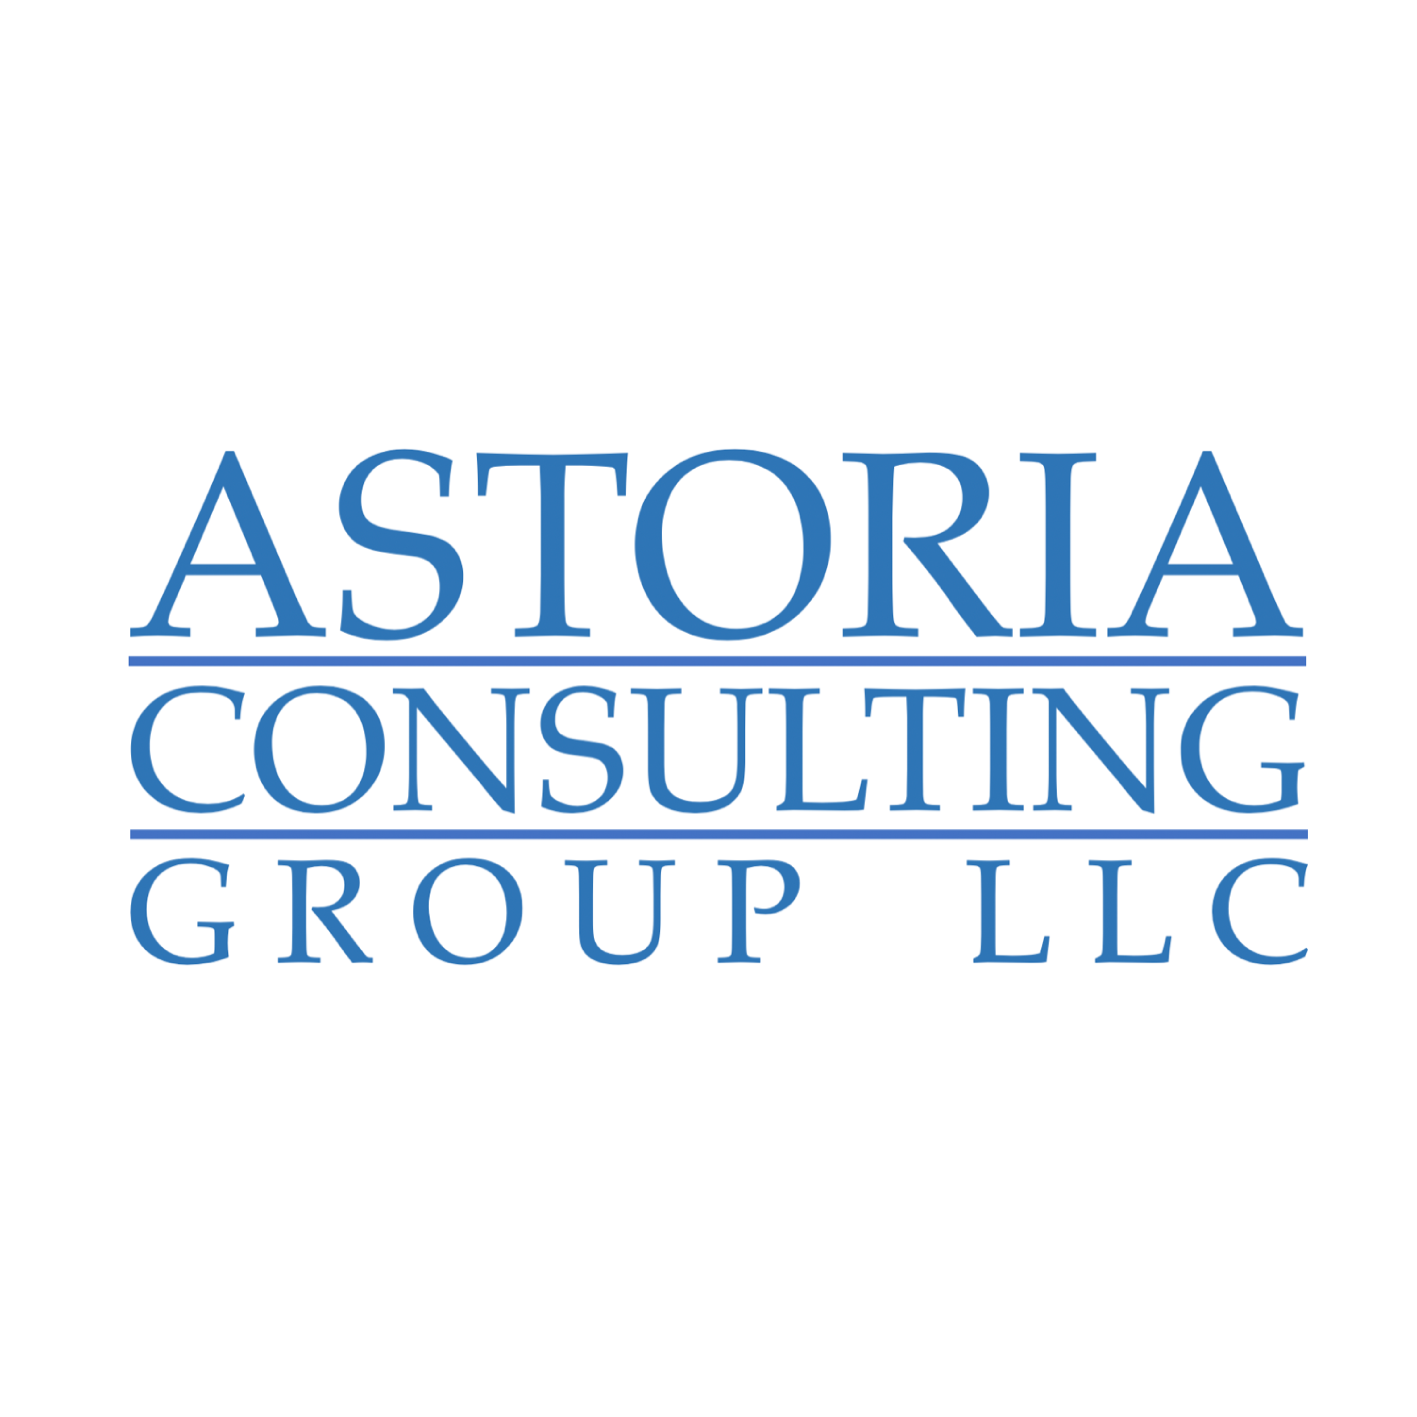 Astoria Consulting Group, LLC